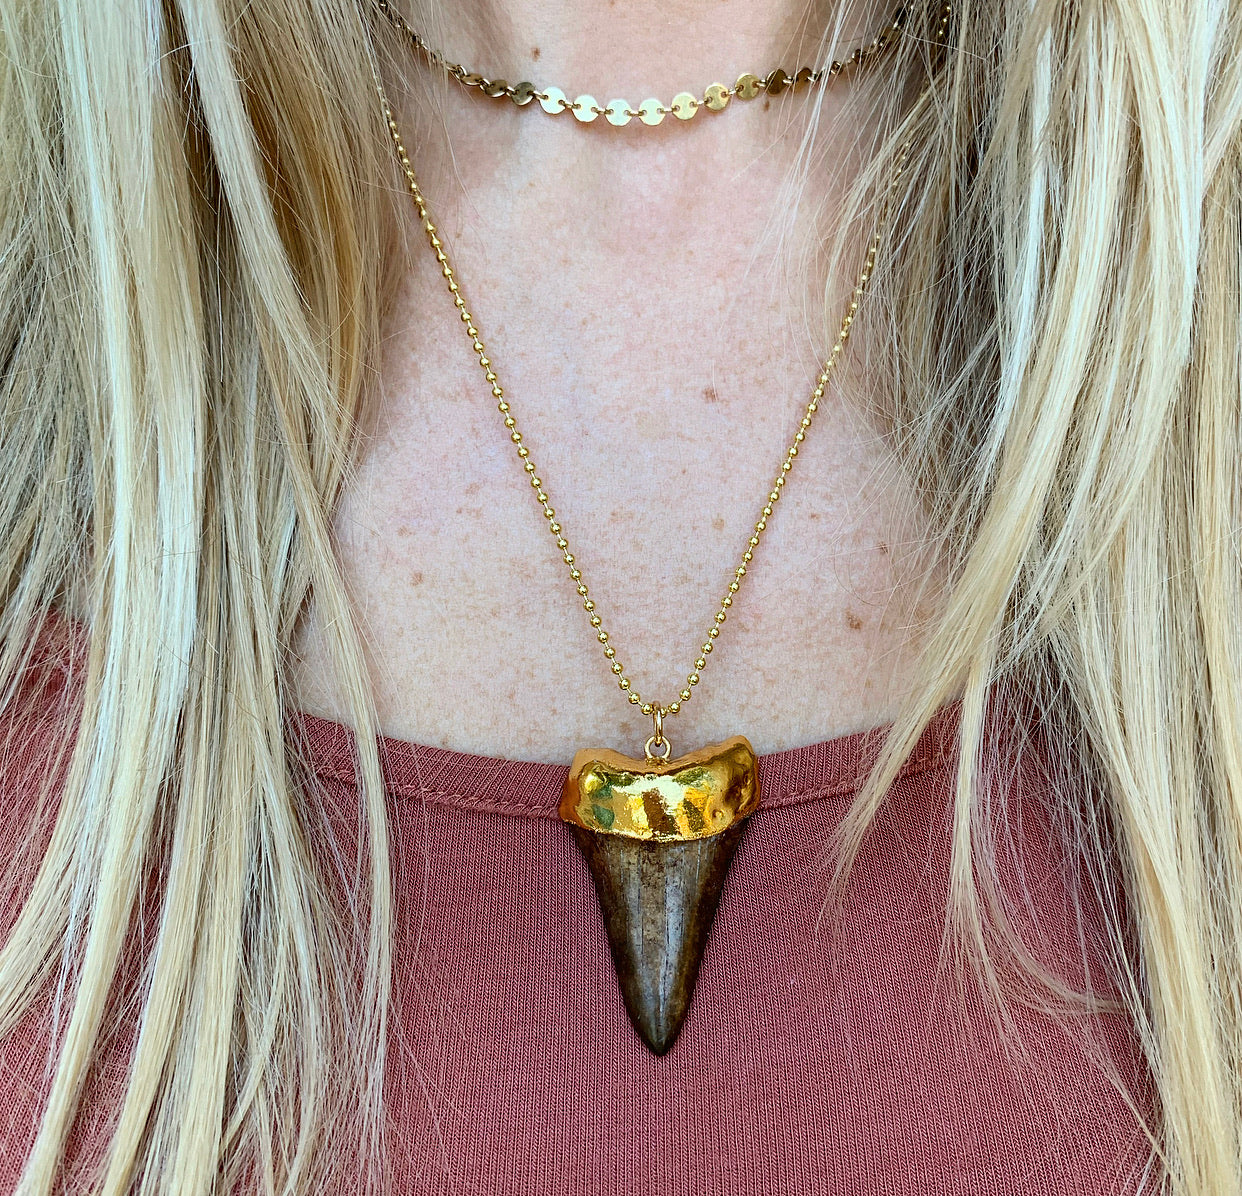 991 - Shark Tooth Necklace